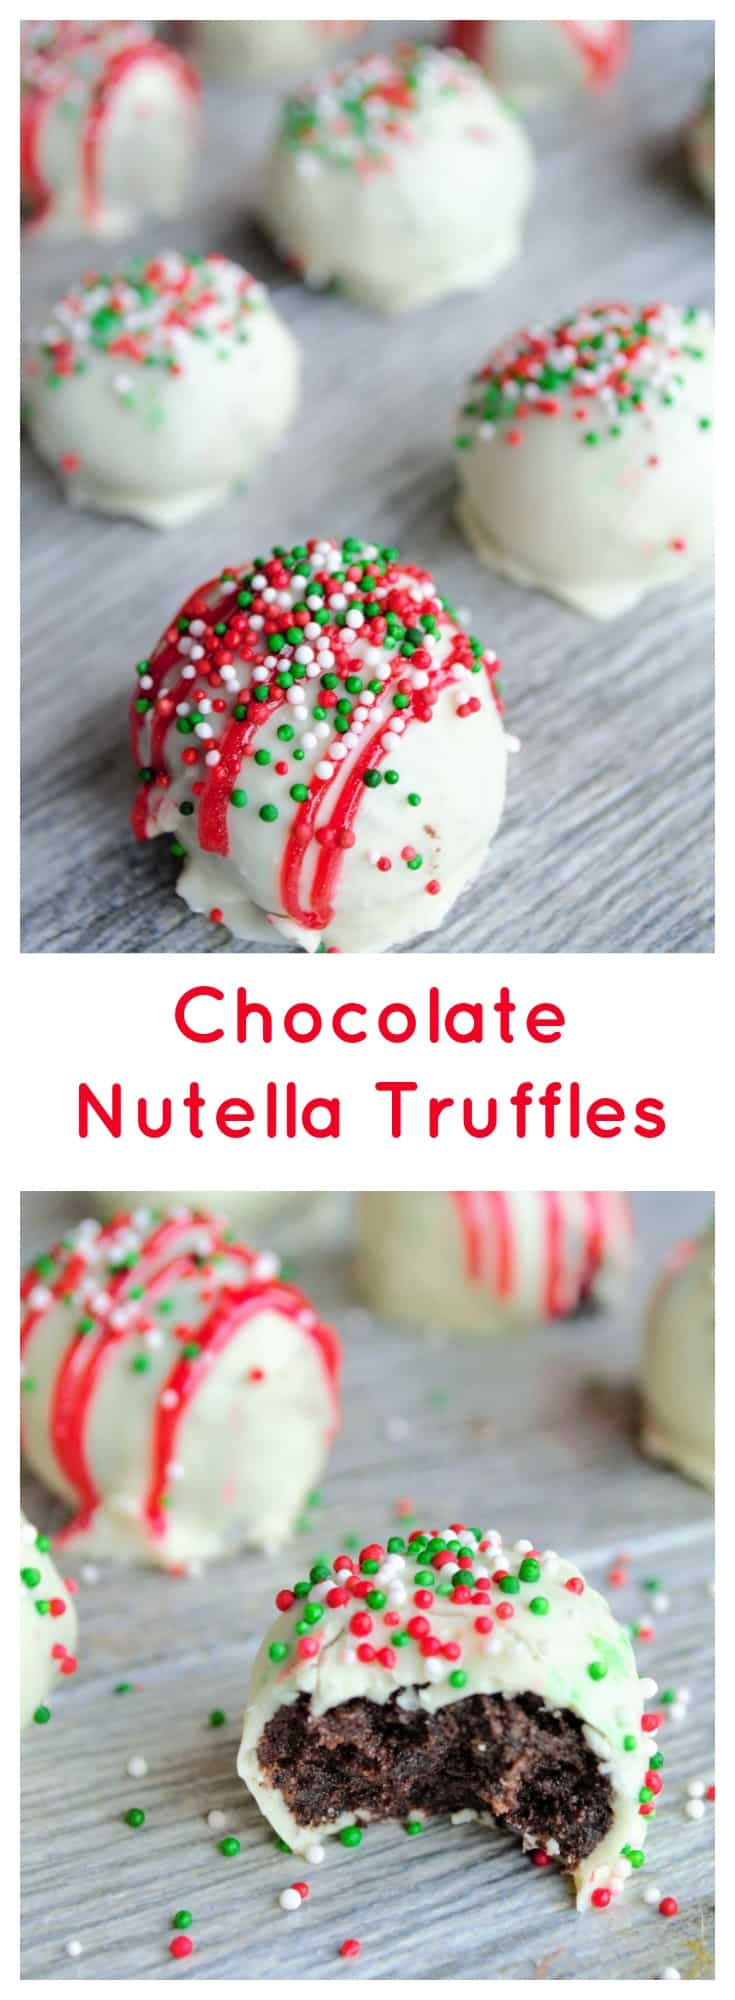 Chocolate Nutella Truffles | These Chocolate Nutella Truffles are the easiest sweet treat you will make this holiday season. Chocolaty, rich, decadent and perfect for any occasion! | Pack Momma | https://www.packmomma.com #nutella #truffles #christmascookies #christmasfood